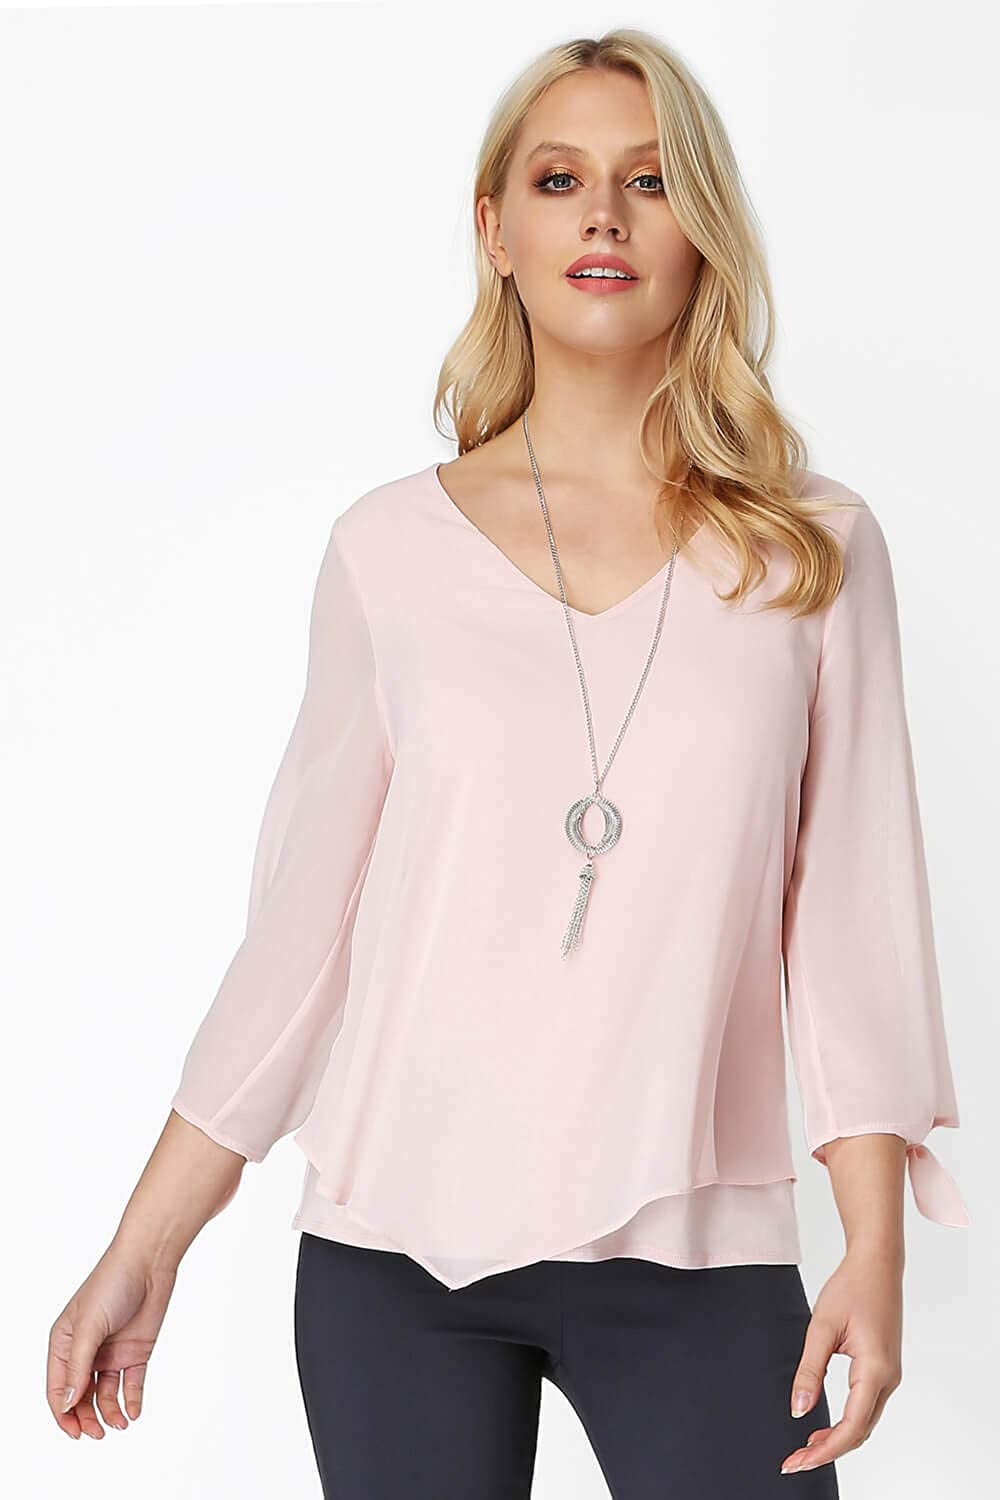 Roman Originals Women V-Neck Chiffon Top with Necklace Ladies Overlay Tops for Going Out Smart Evening Dinner Date Cocktails Elegant Sparkly Necklaces Party Smart Blouses